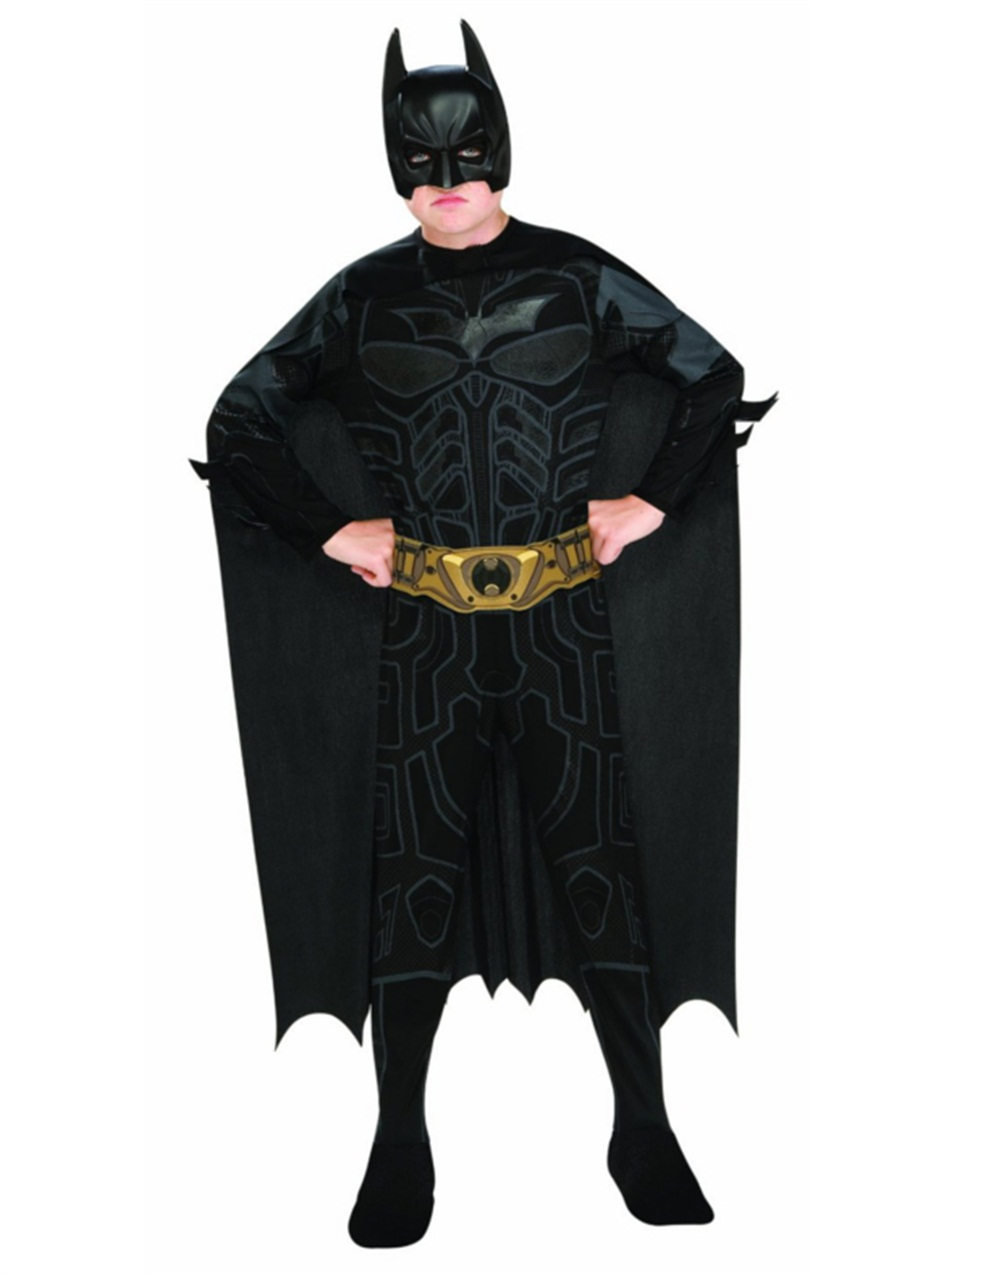 sc 1 st  Walmart & Batman The Dark Knight Rises Child Halloween Costume - Walmart.com